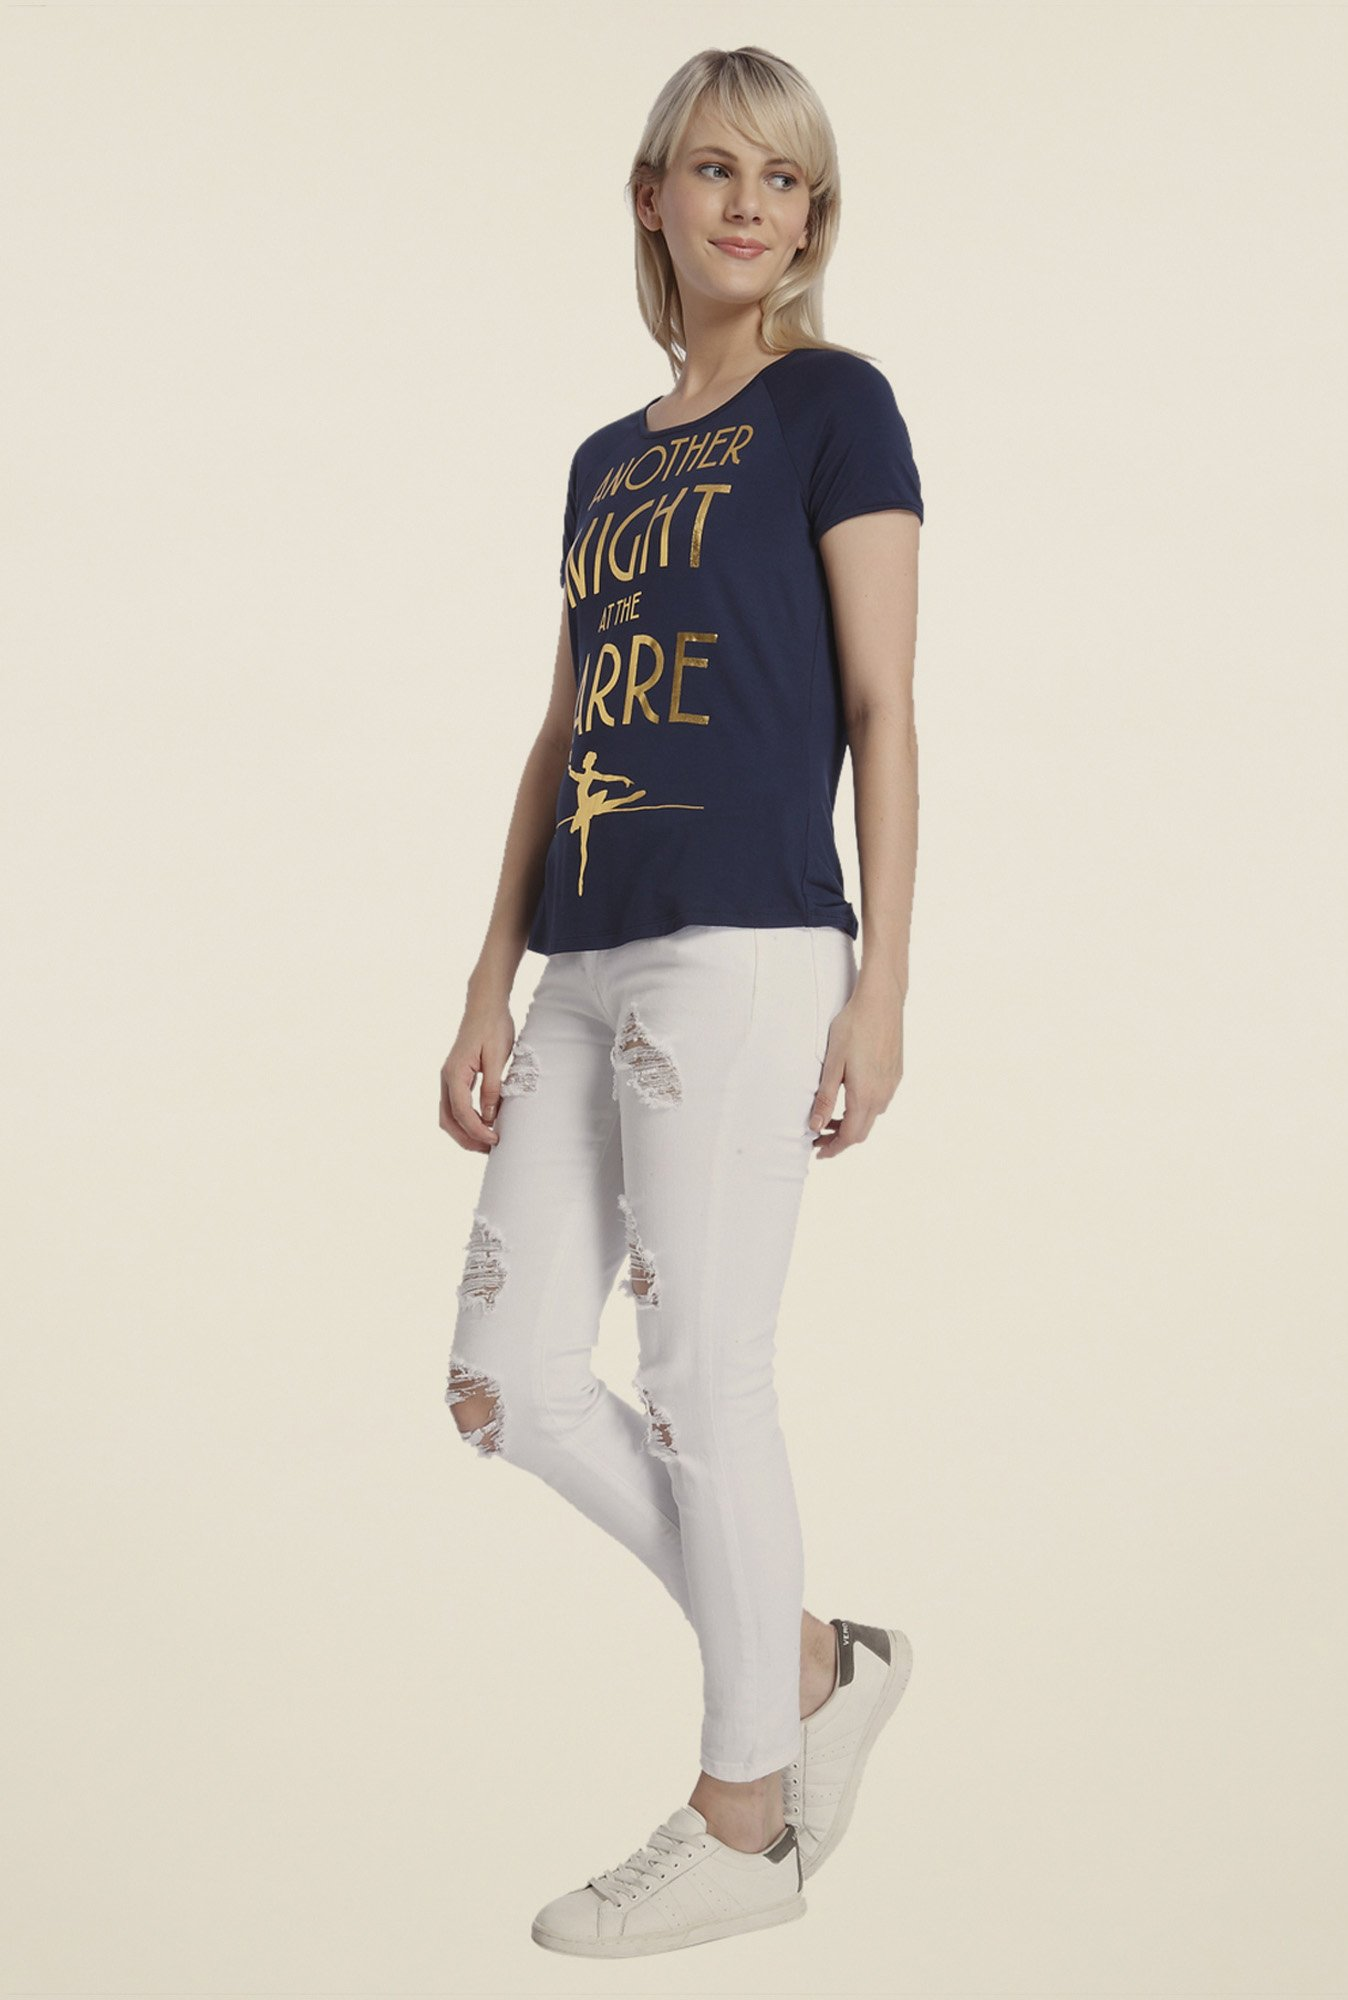 Vero Moda Navy Printed Top